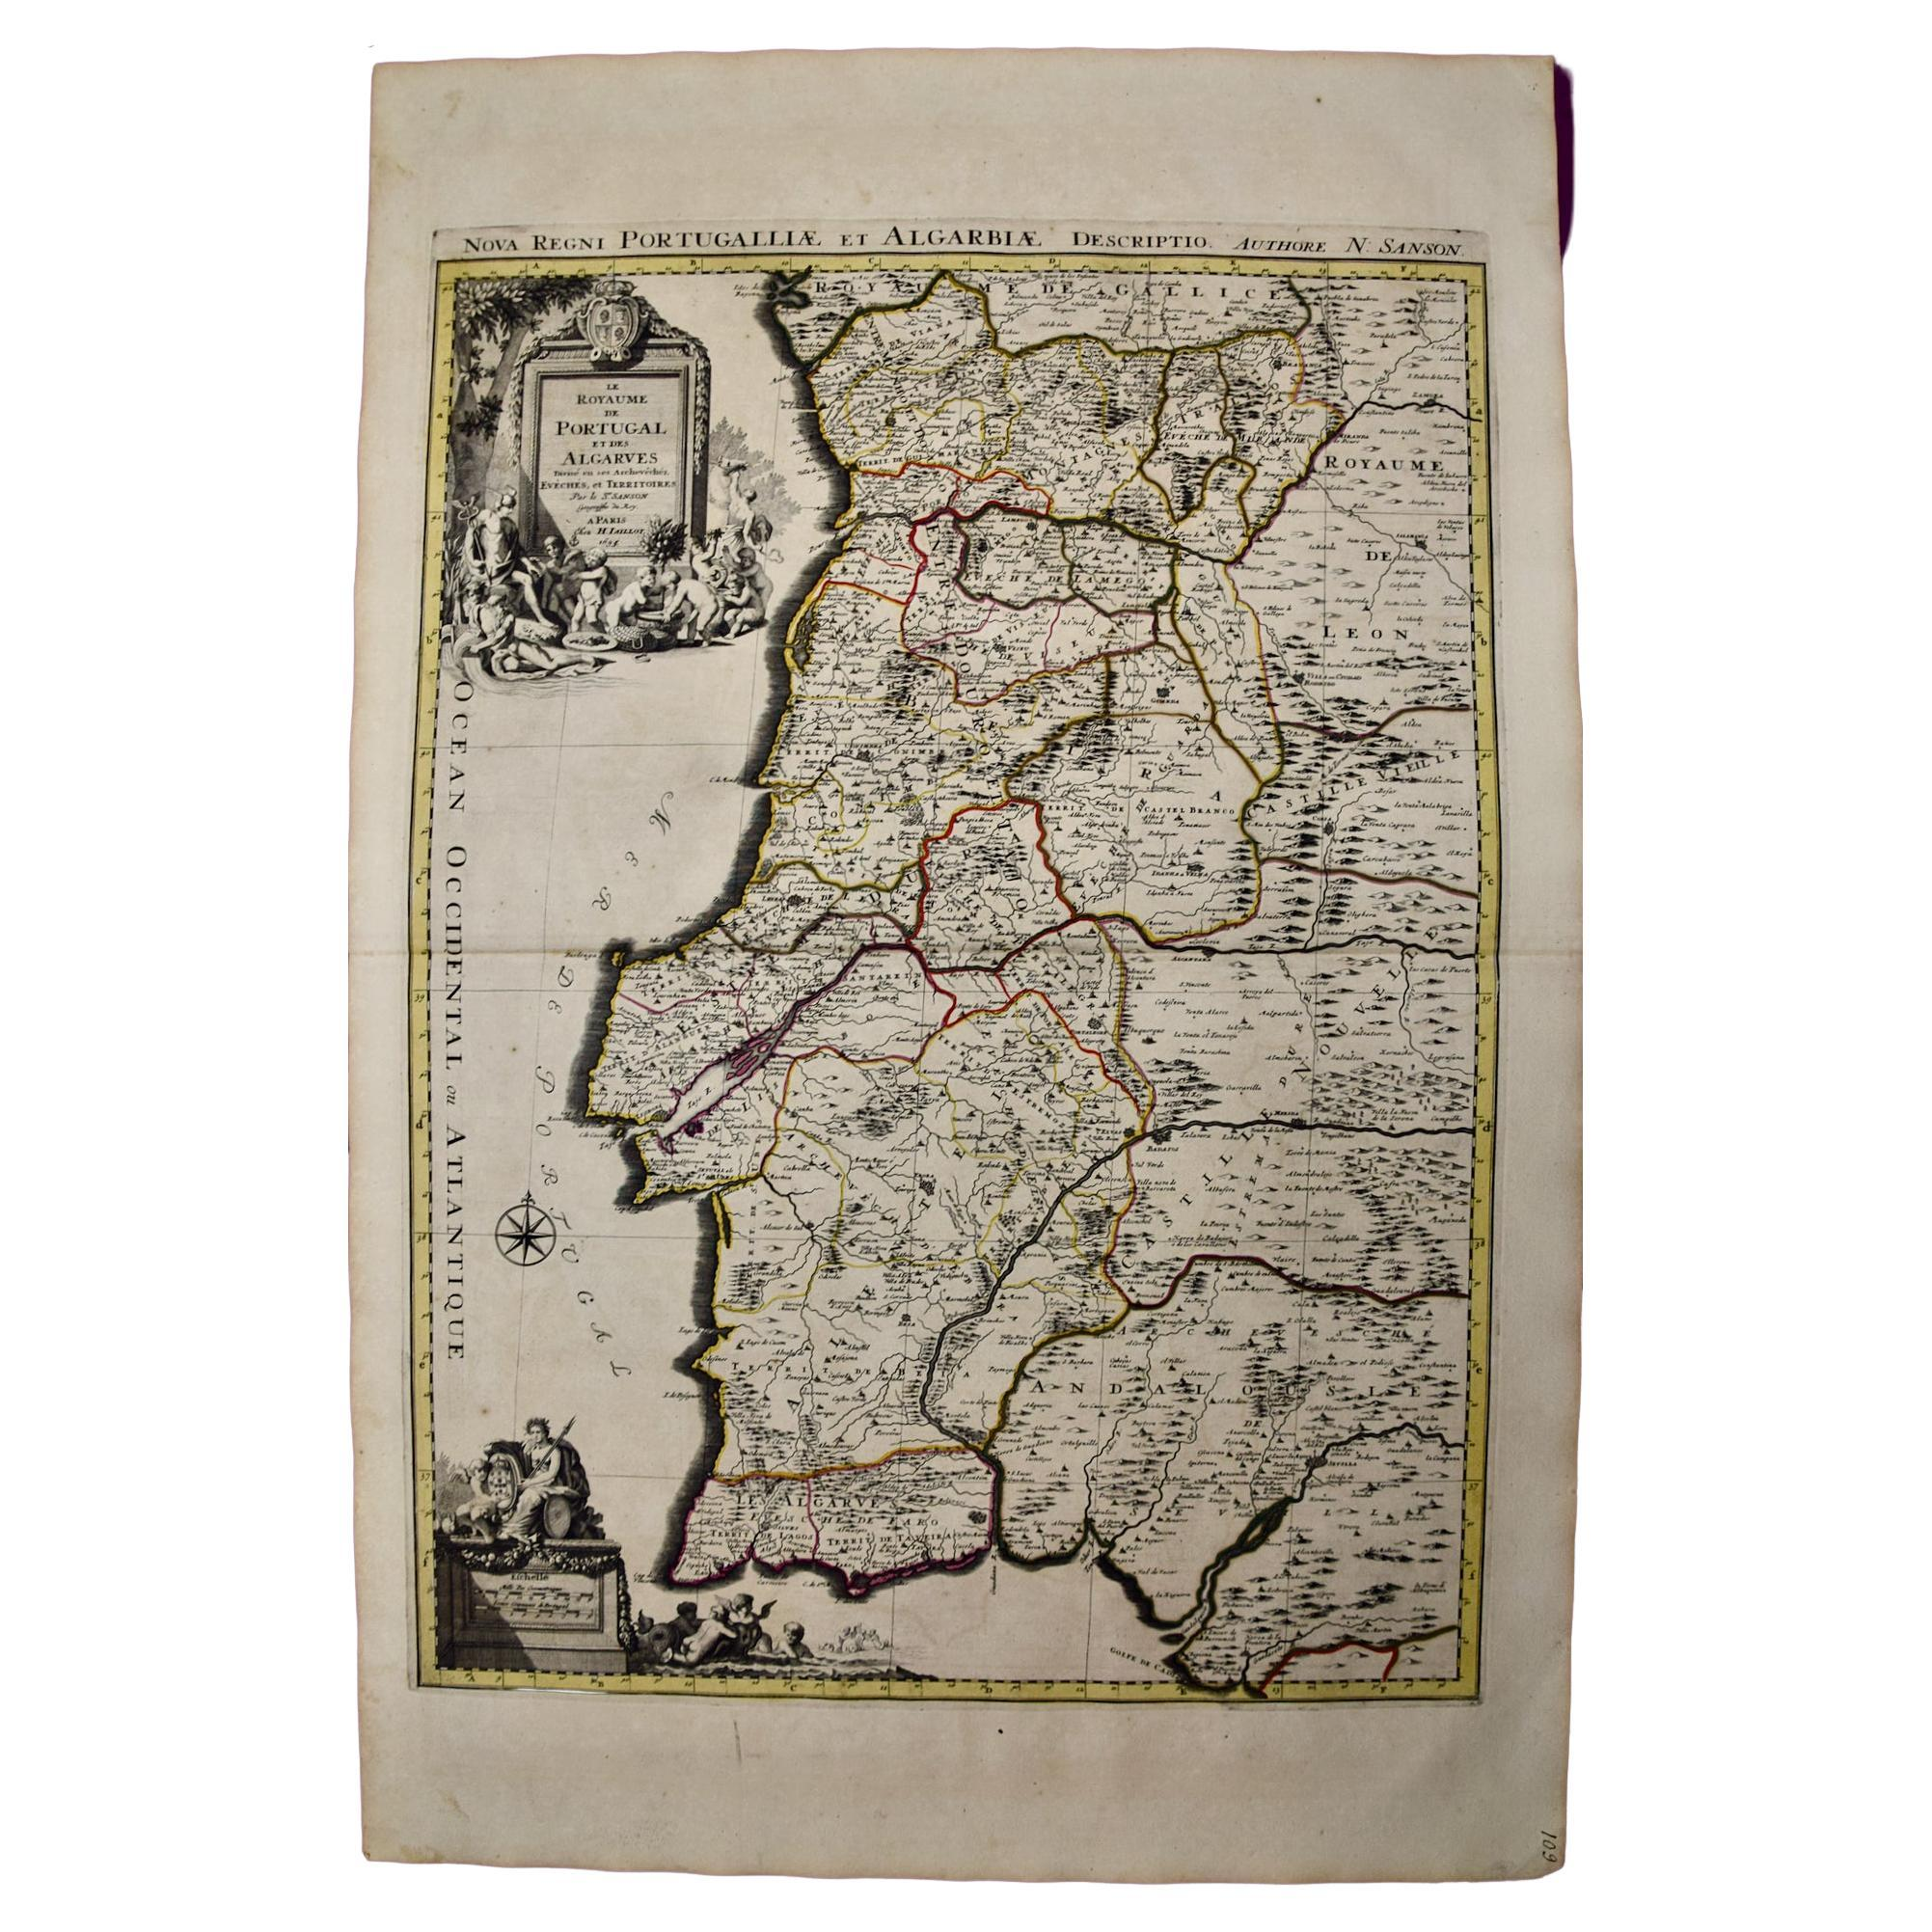 Large 17th Century Hand-colored Map of Portugal by Sanson and Jaillot